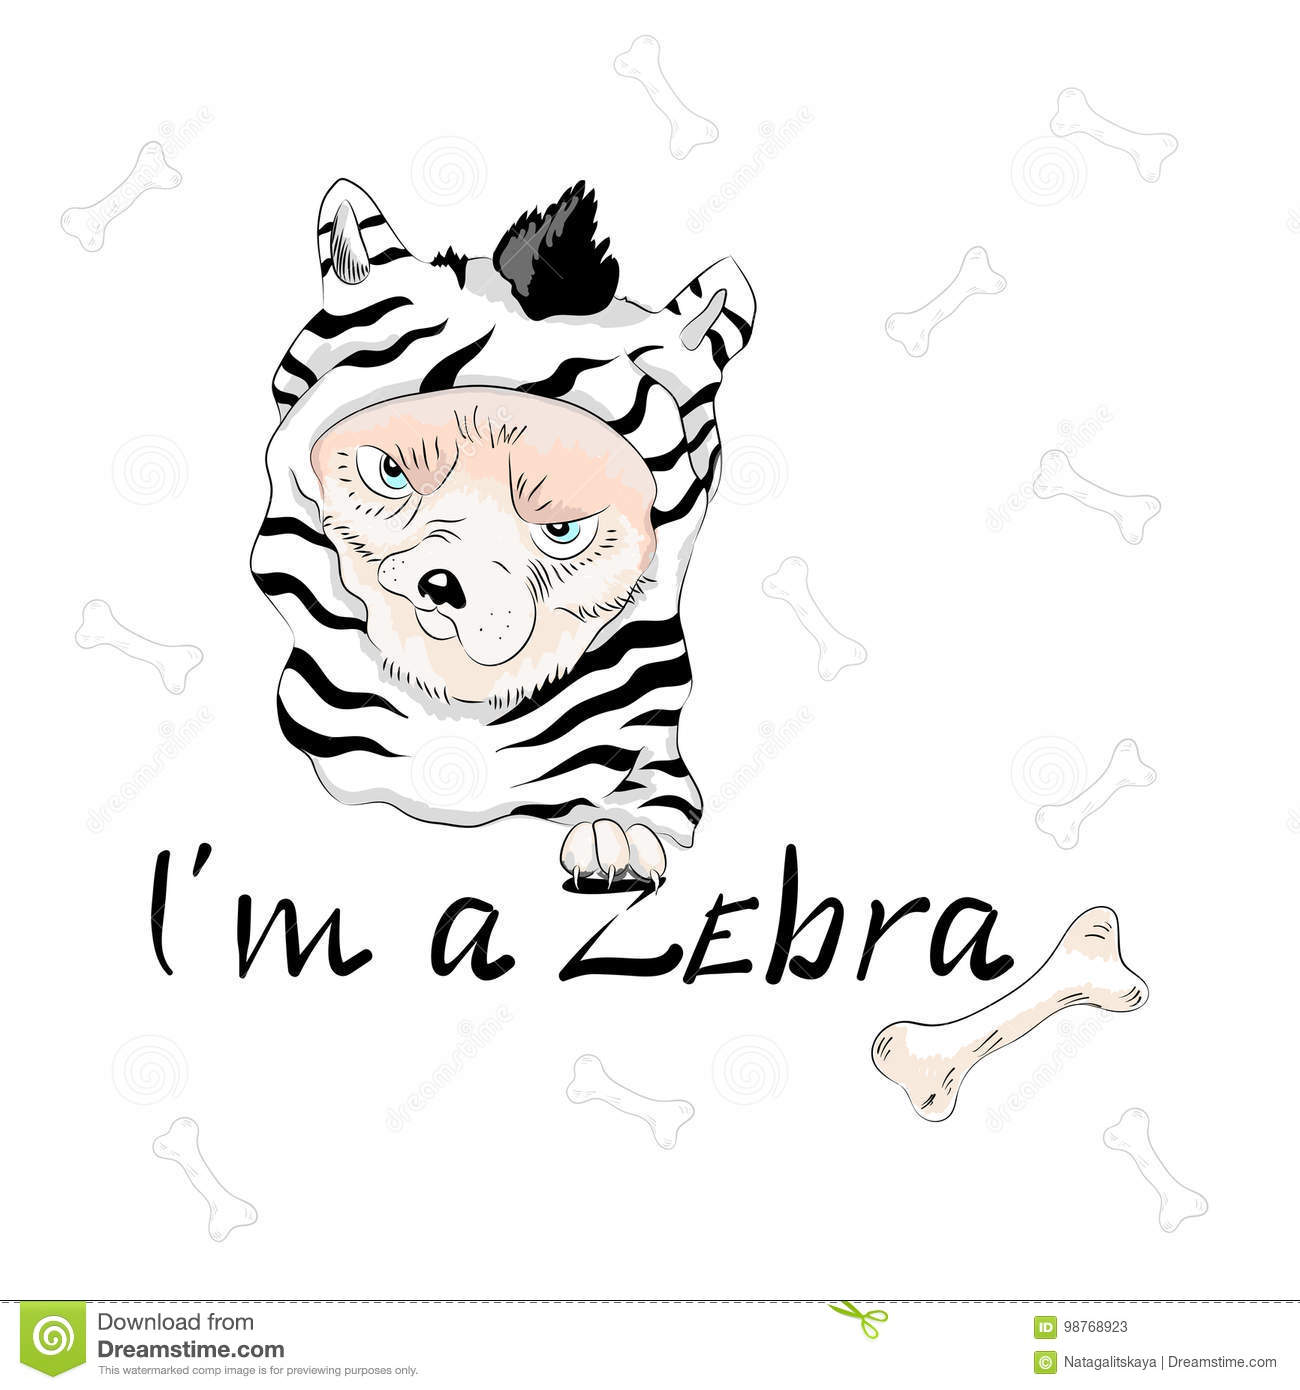 Cute dog wearing like zebra with slogan.